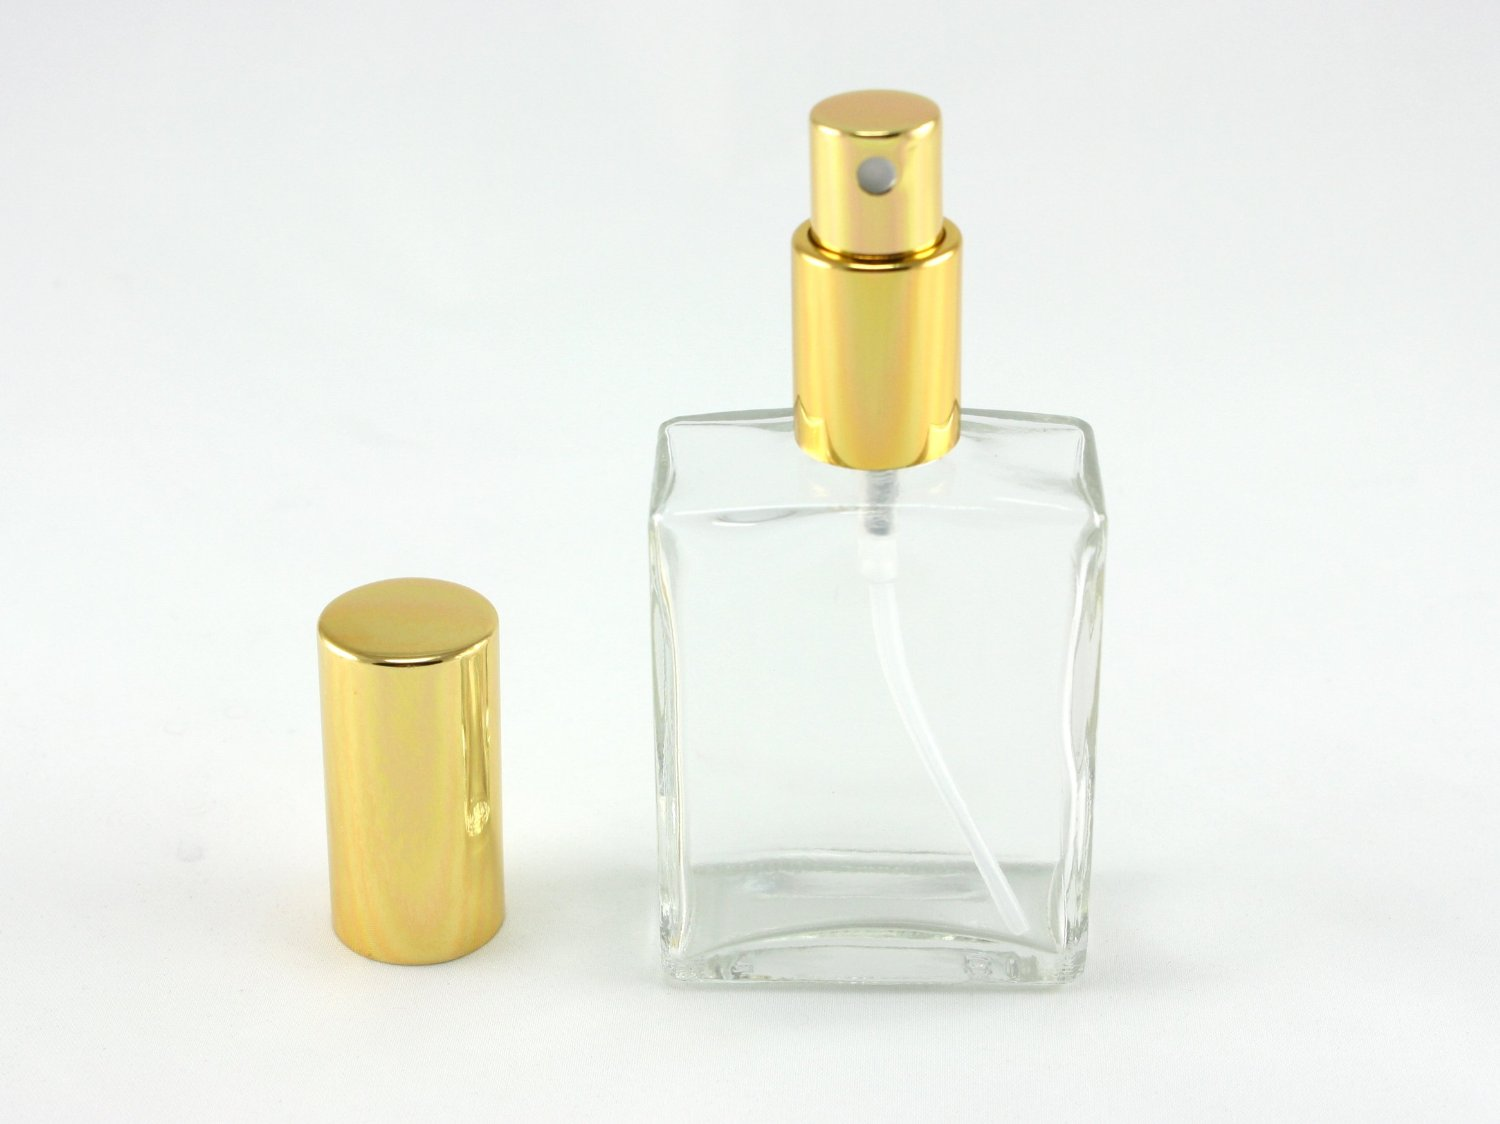 a4f55a1f7190 Get Quotations · Skyway Refillable Travel Size 2 OZ Perfume Fragrance  Bottle TSA Approved Pump Atomizer Spray Perfect for